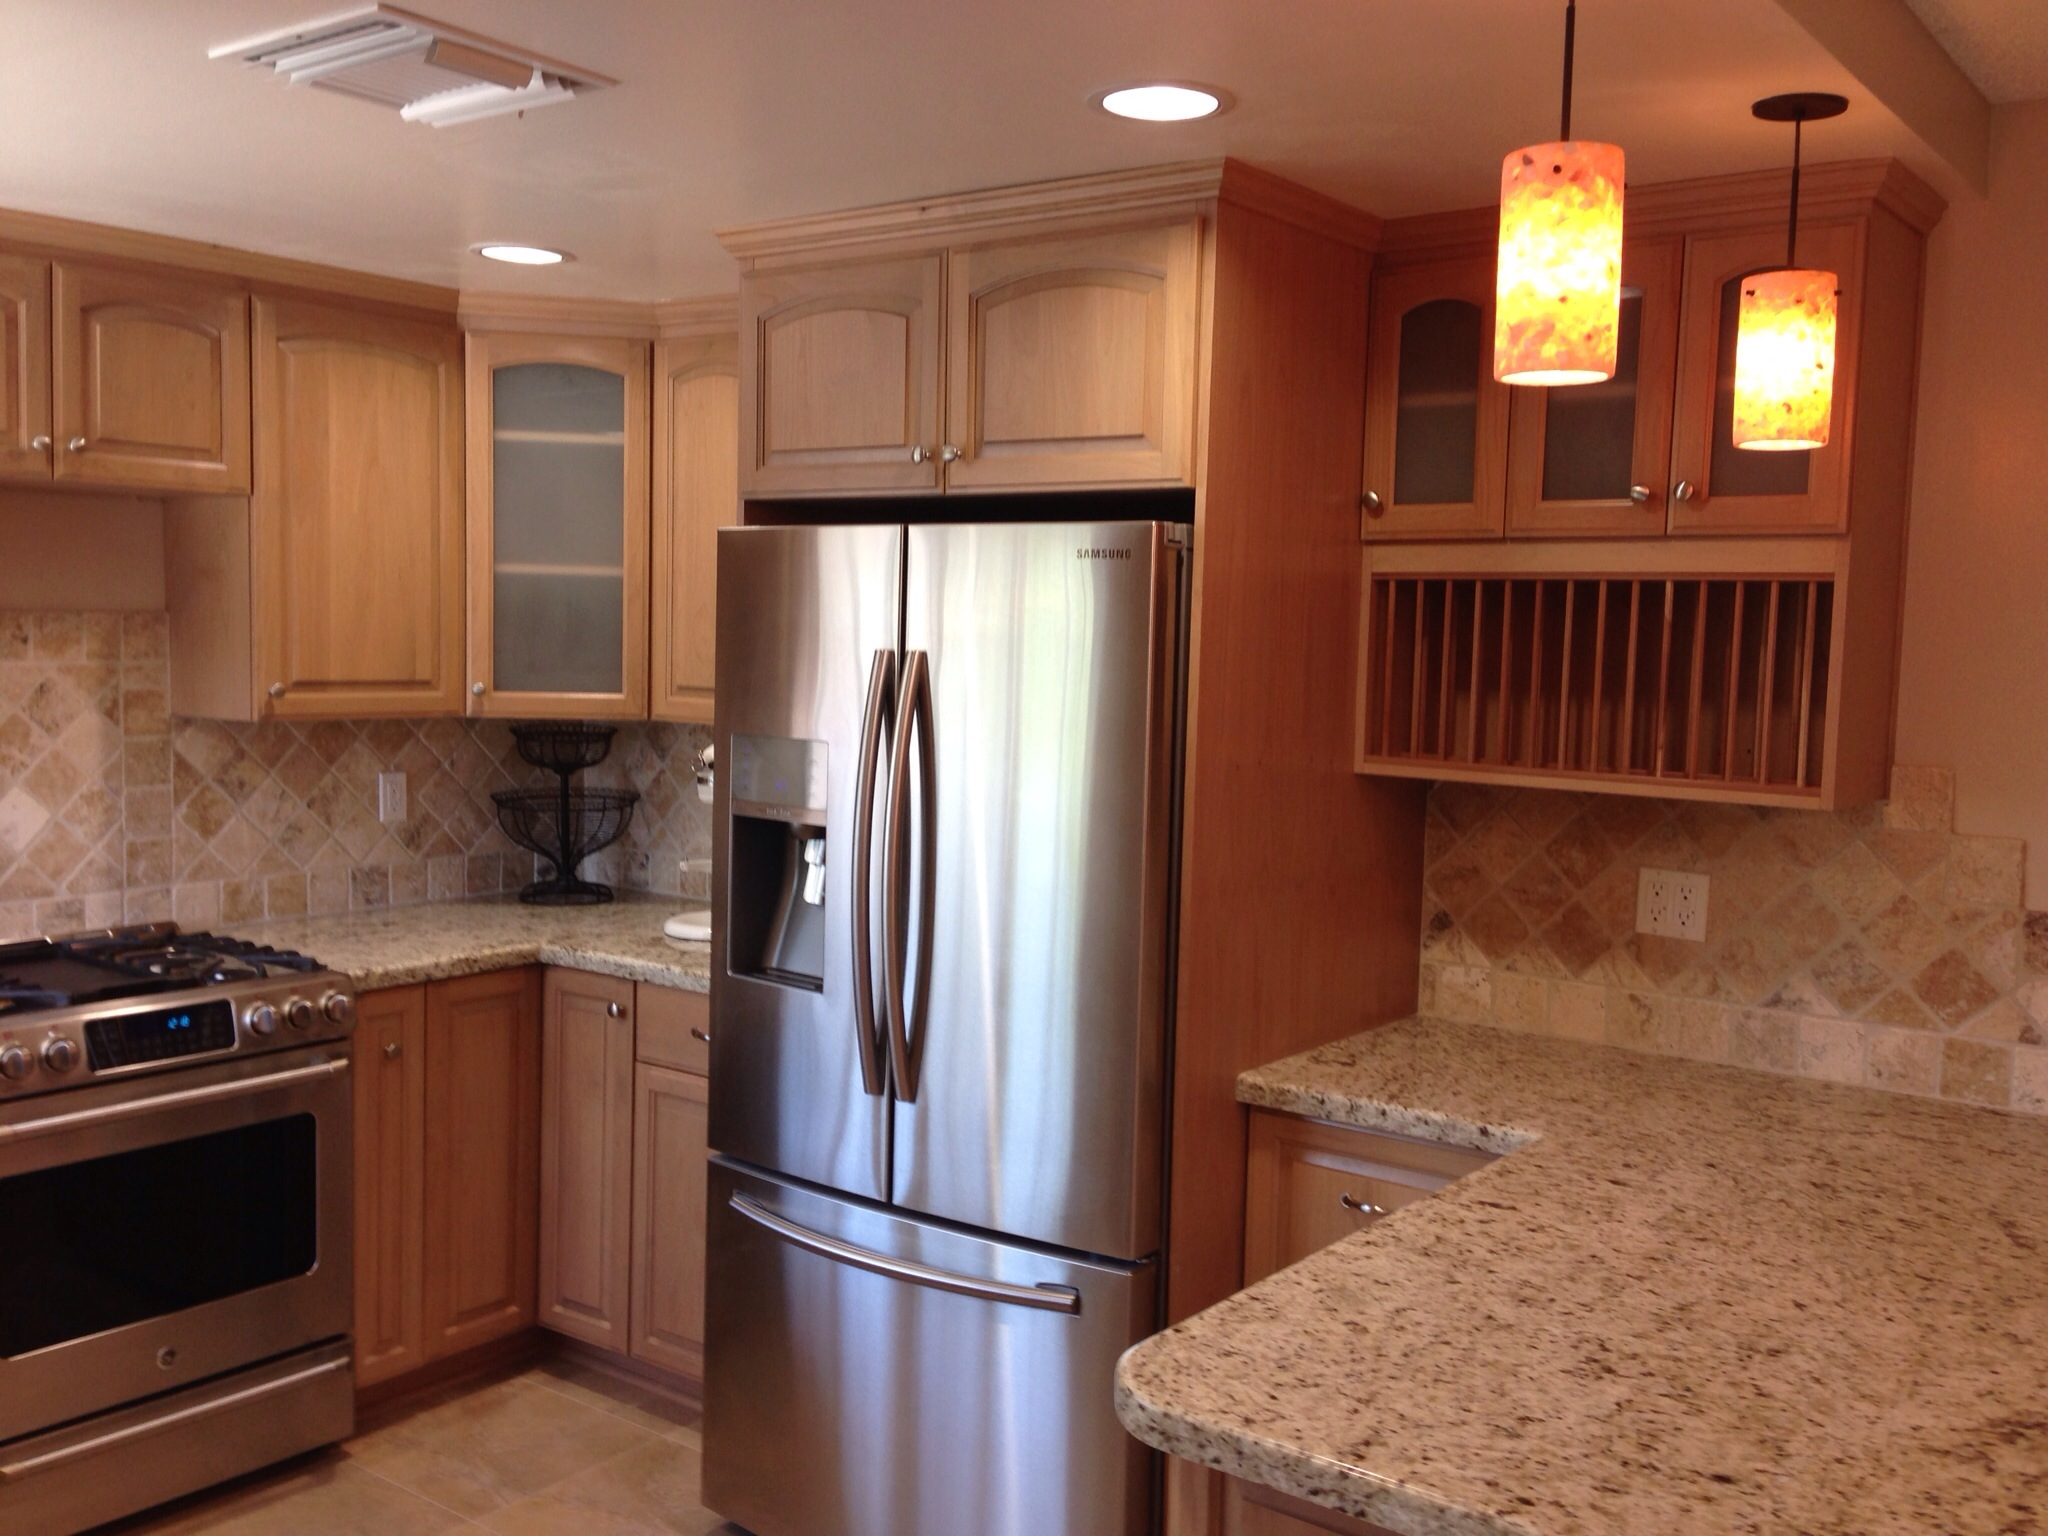 Home Remodel Kitchen Remodel In Simi Valley Ca Los Angeles Woodland Hills Remodeling Contractor Skyline